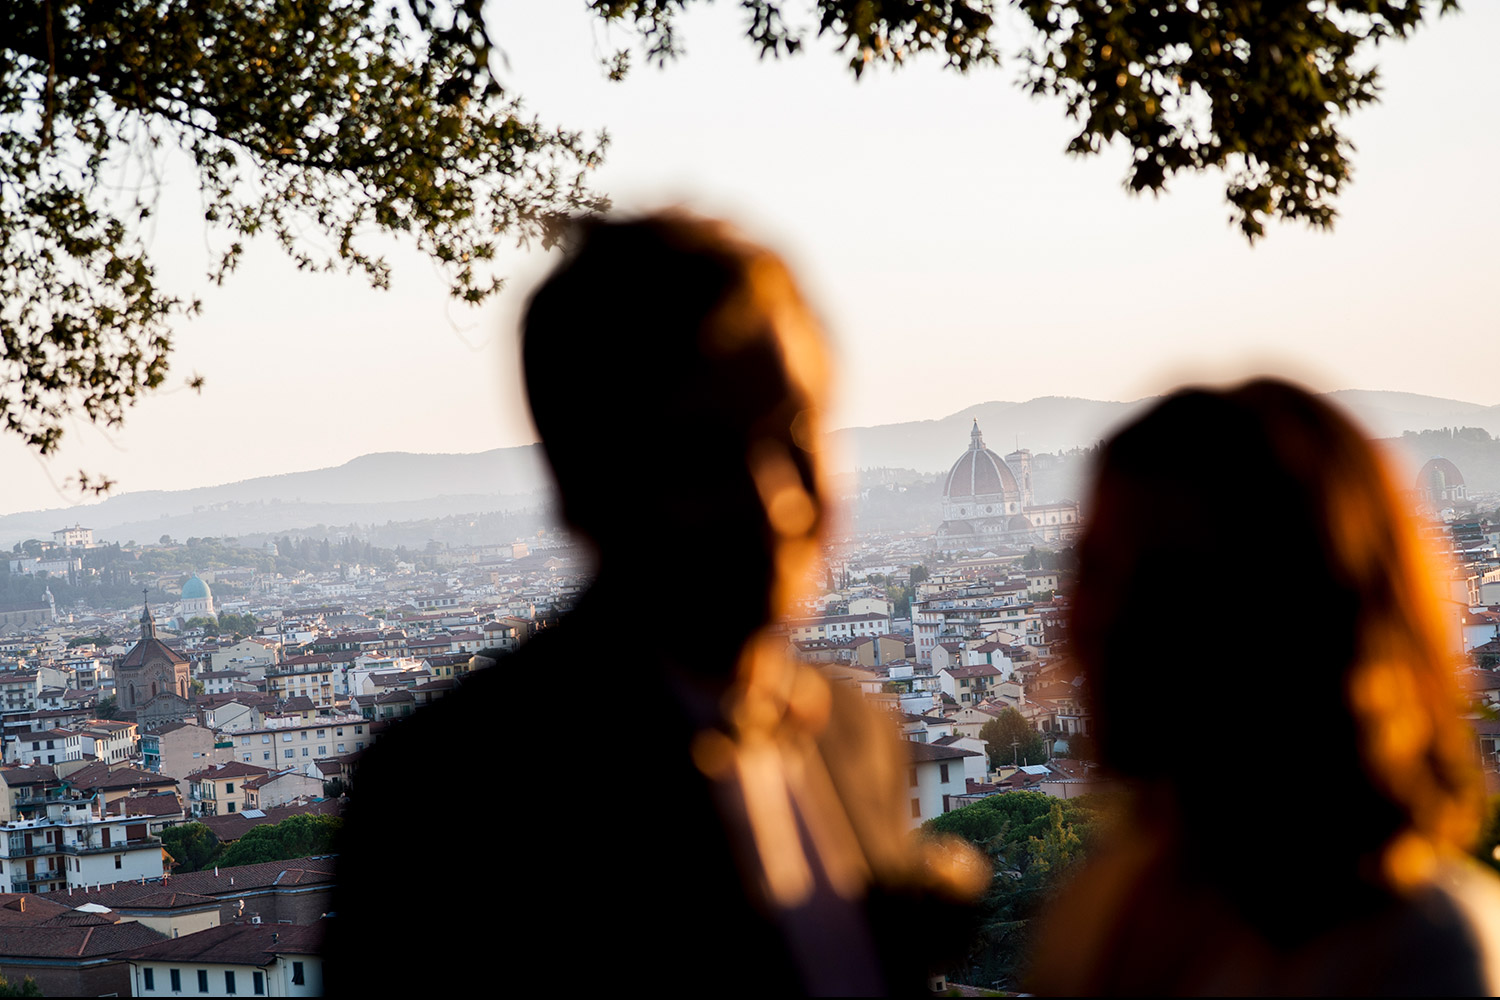 Best wedding venue overlooking florence